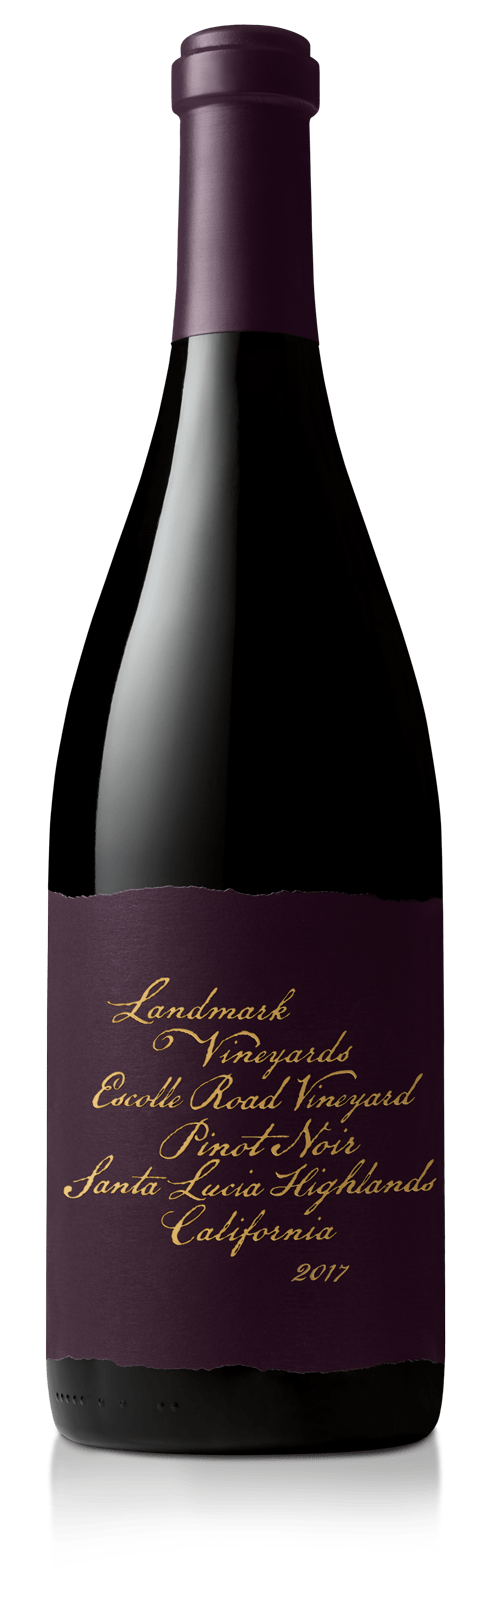 Distinctly Dark: Escolle Rd Pinot Noir.